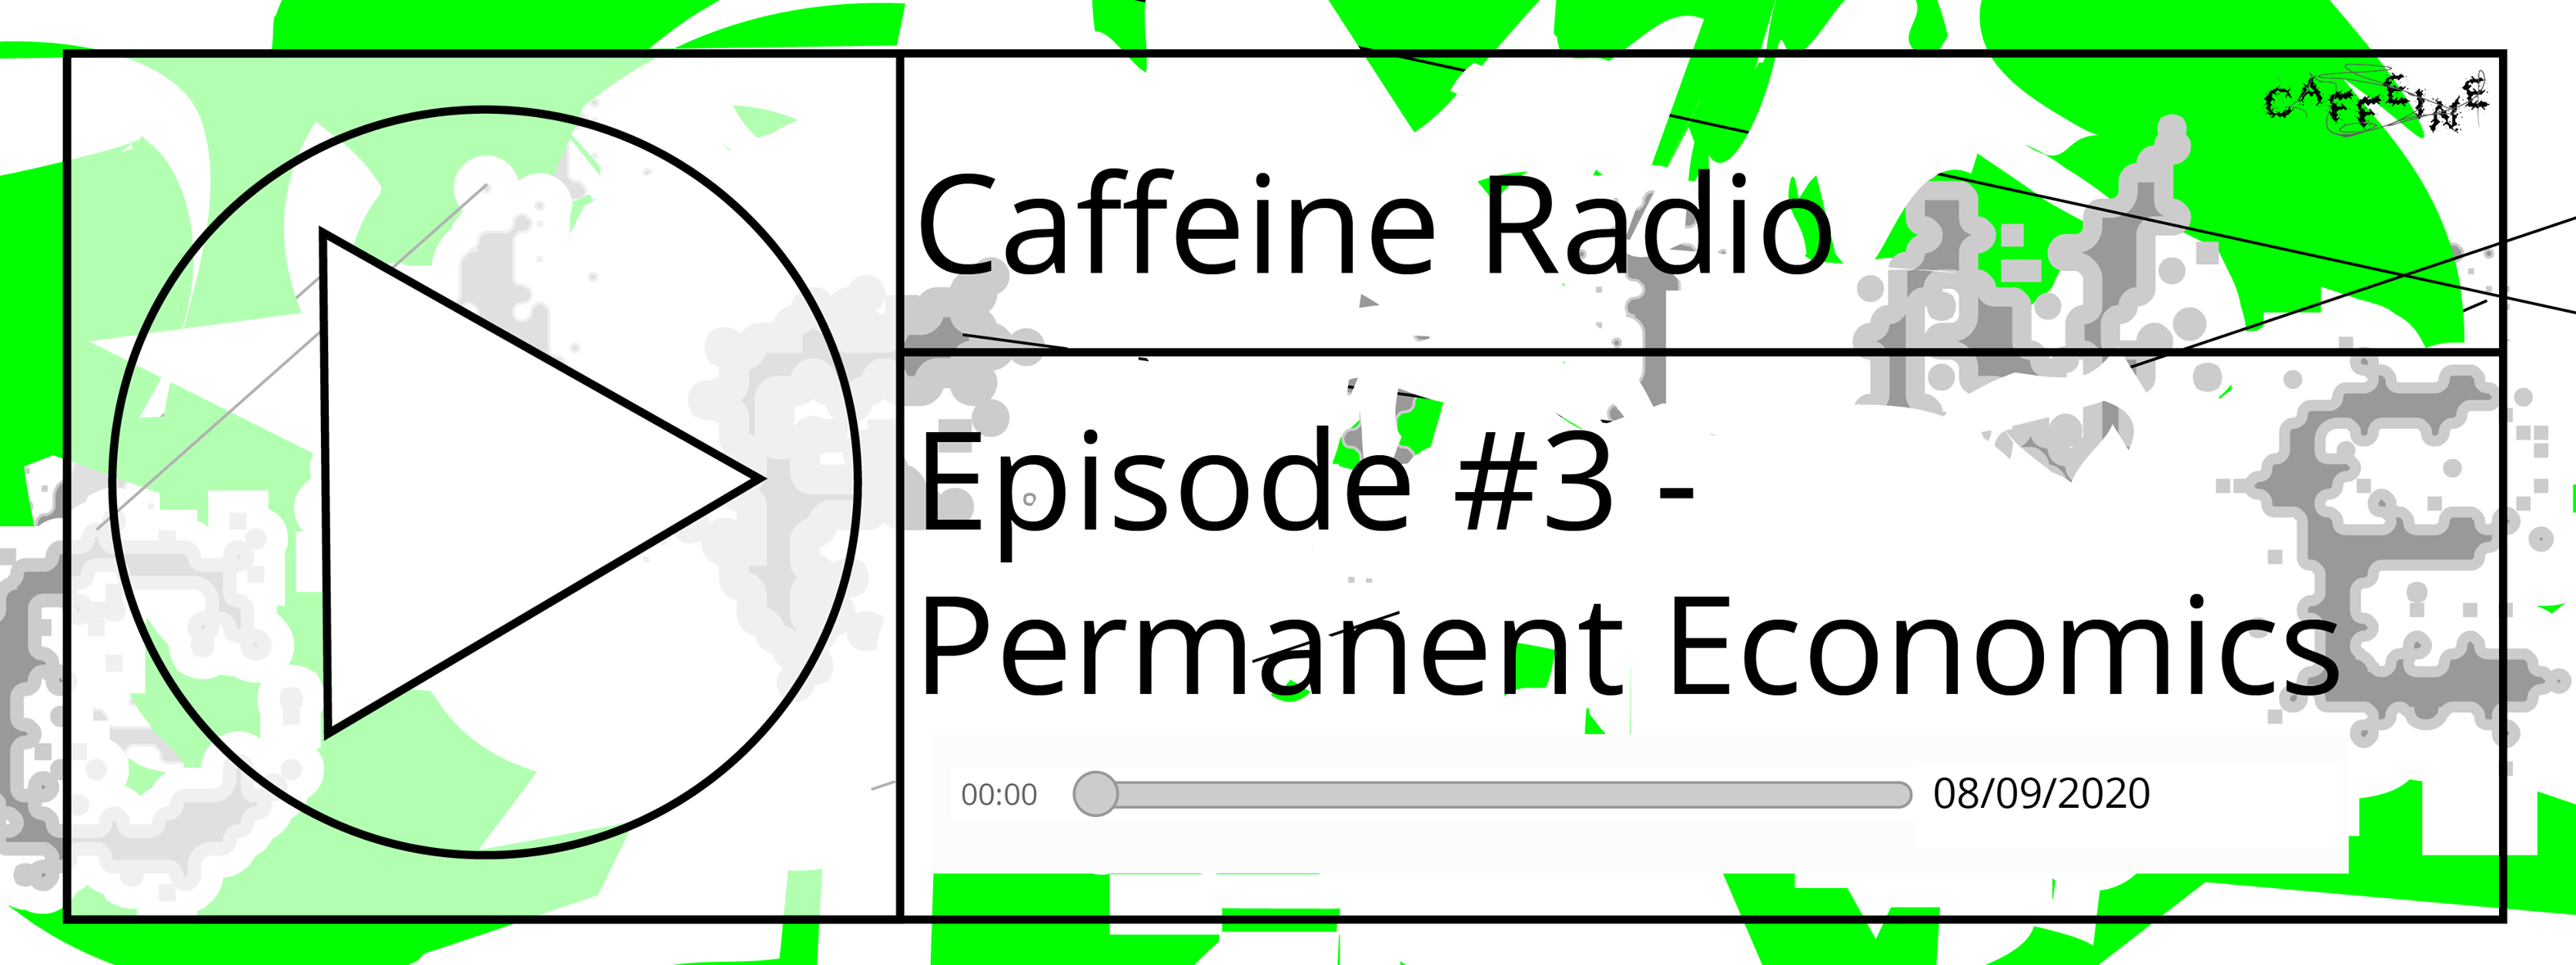 Tonight - Caffeine Radio #3 - Permanent Economics - 21:00 CBS